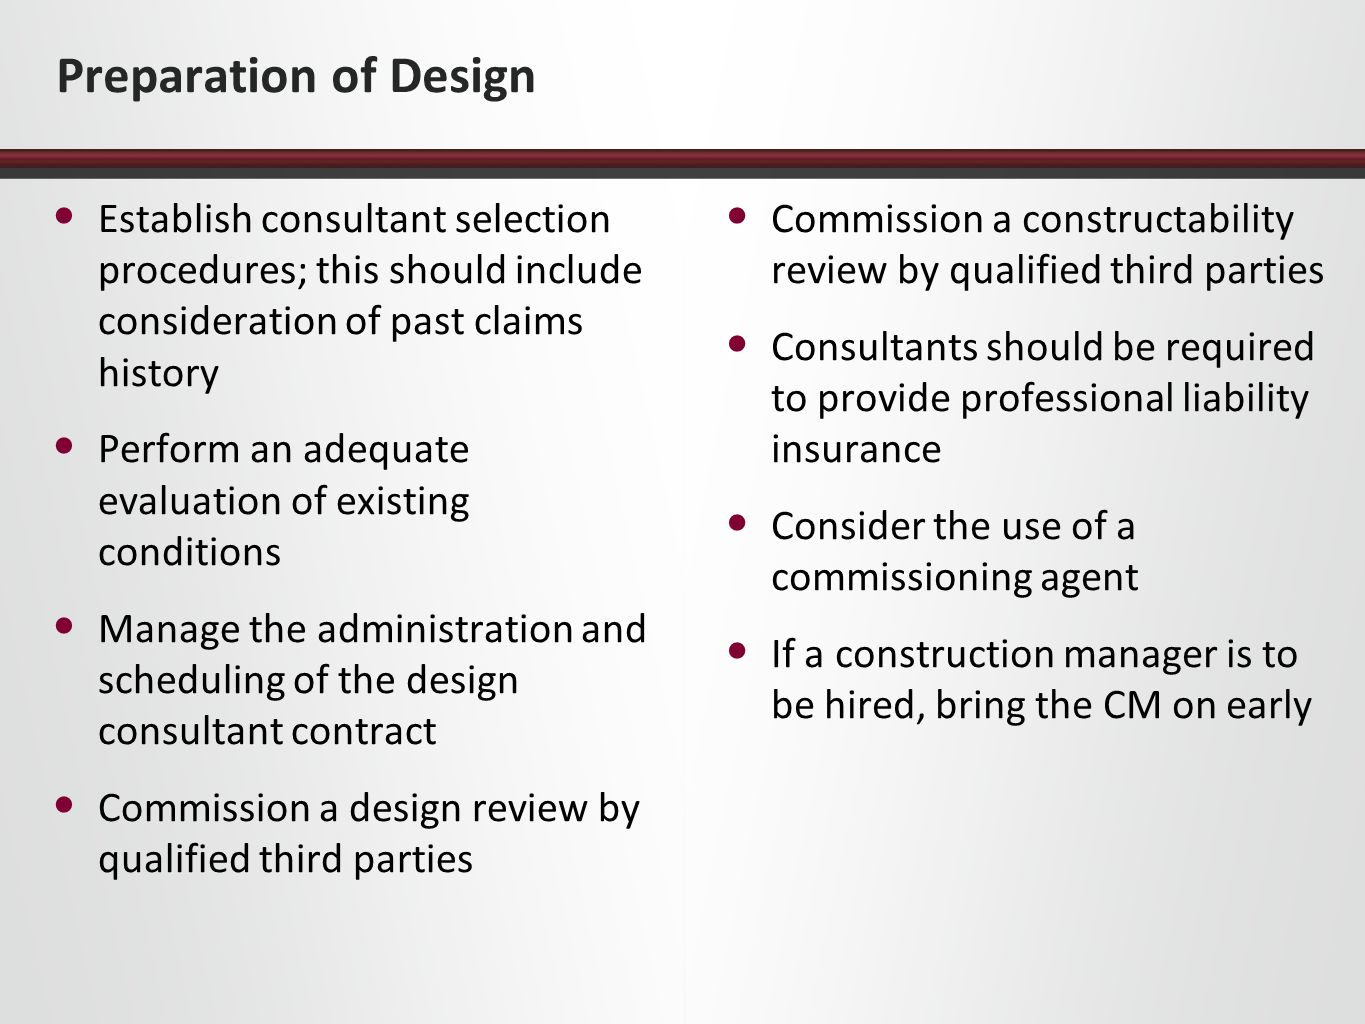 Preparation of Design Establish consultant selection procedures; this should include consideration of past claims history Perform an adequate evaluation of existing conditions Manage the administration and scheduling of the design consultant contract Commission a design review by qualified third parties Commission a constructability review by qualified third parties Consultants should be required to provide professional liability insurance Consider the use of a commissioning agent If a construction manager is to be hired, bring the CM on early